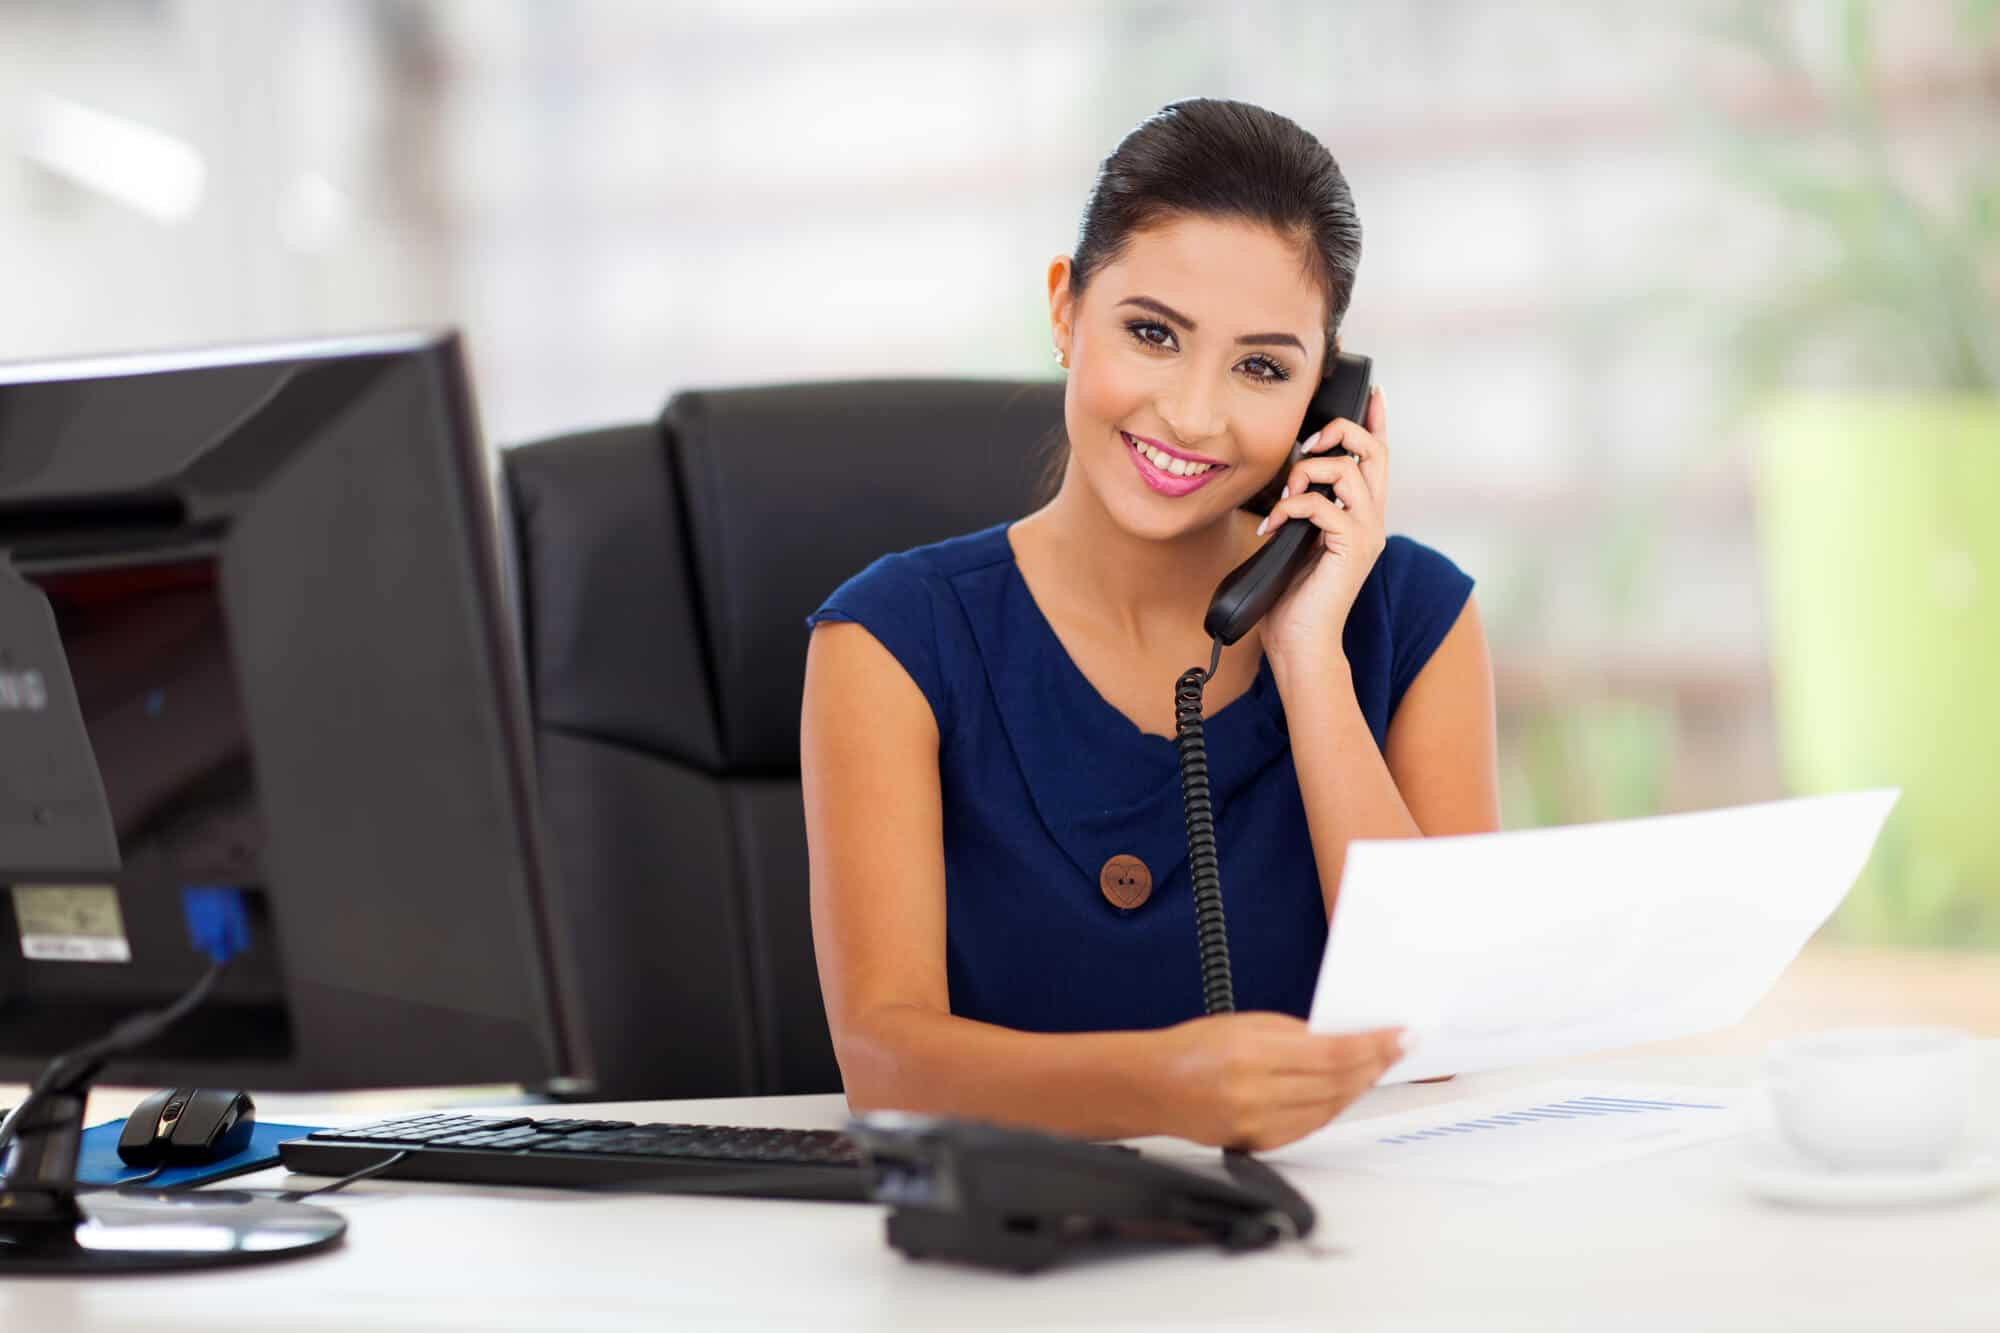 Telephone Answering Service for Medical Practices